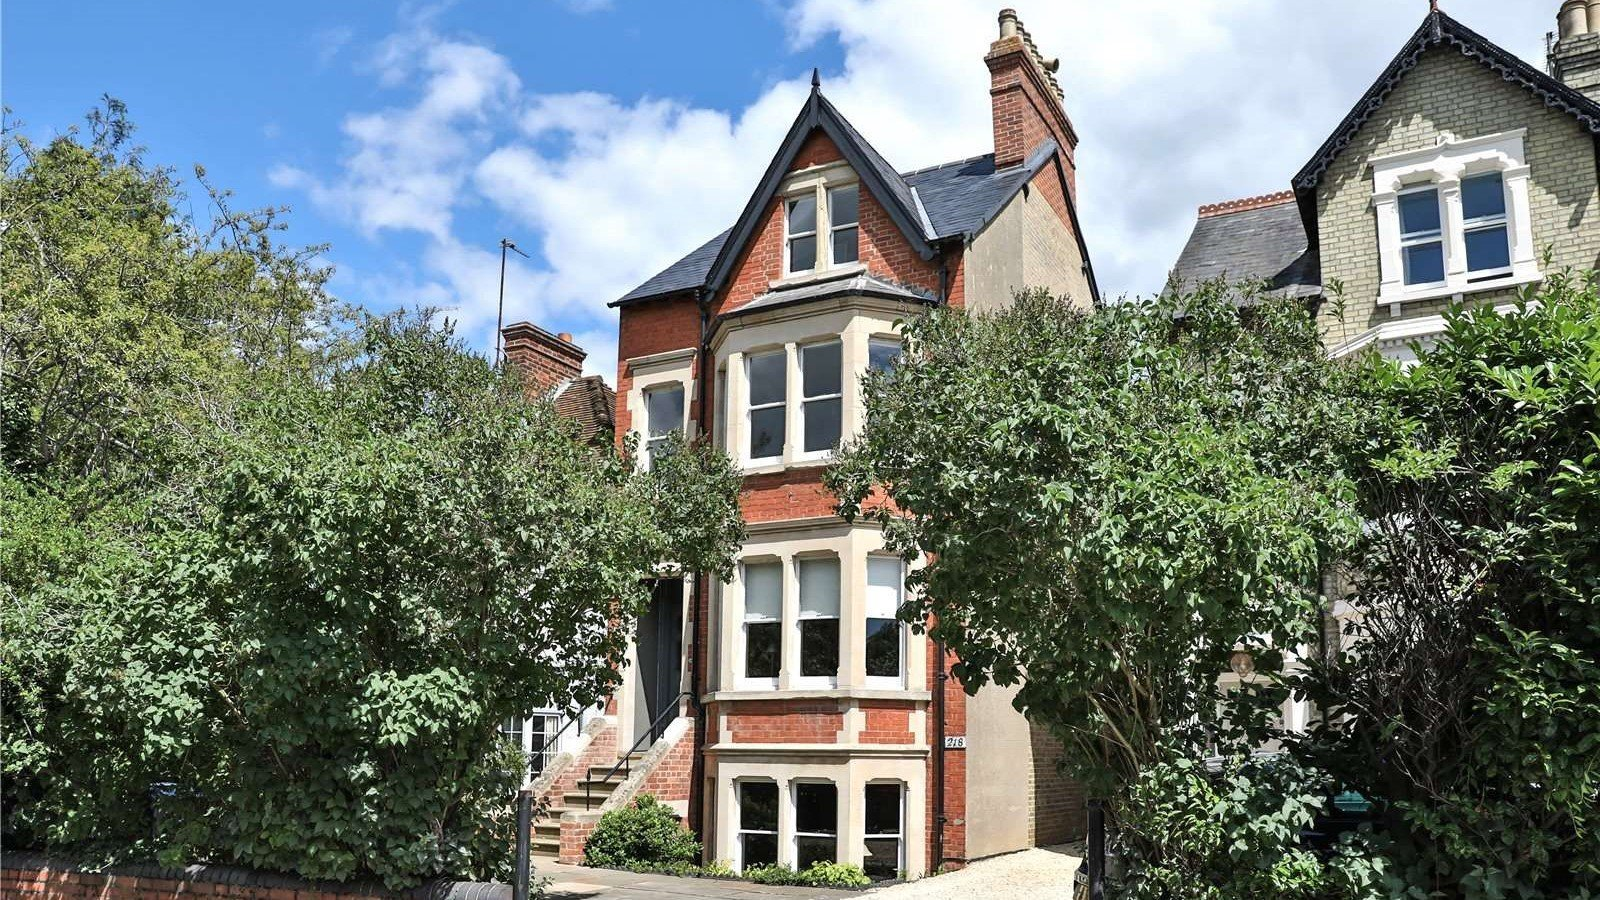 An elegantly-proportioned Victorian house on Woodstock Road in Oxford